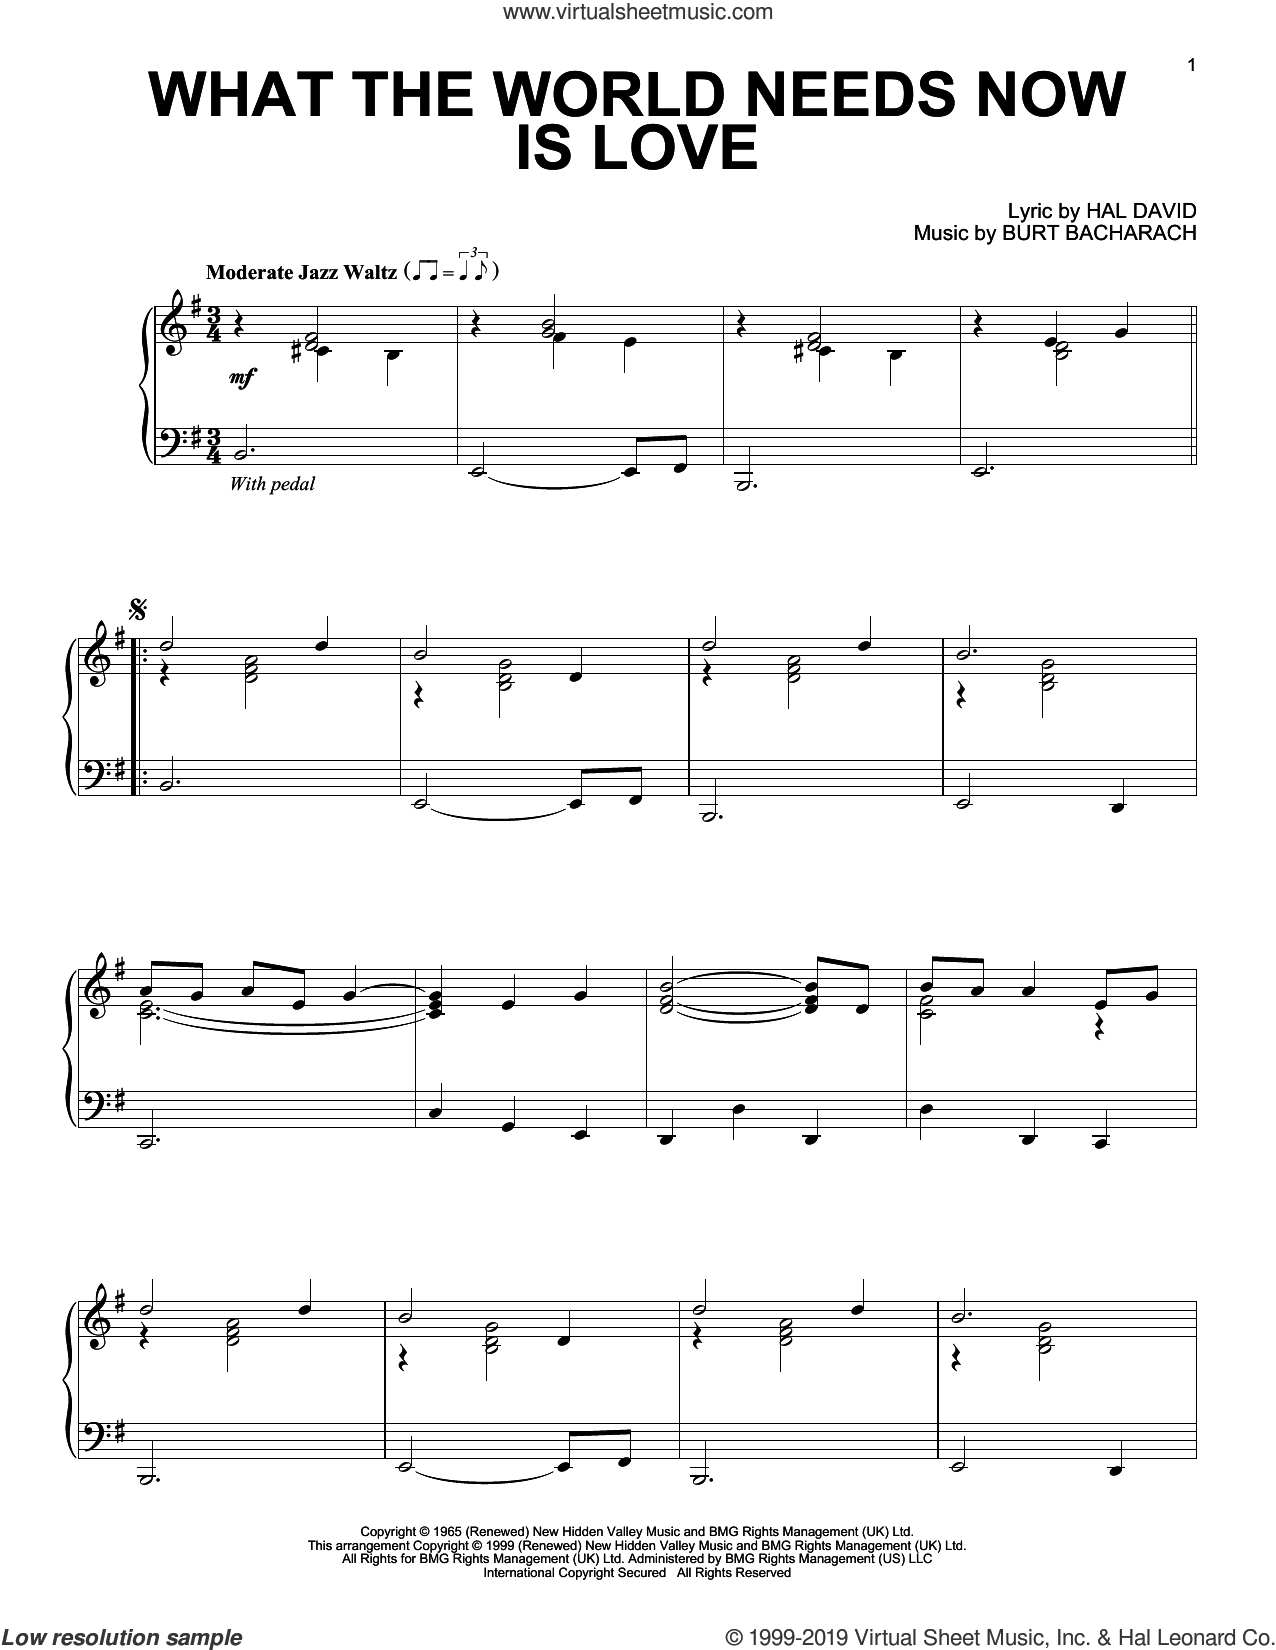 What The World Needs Now Is Love sheet music for piano solo by Bacharach & David, Burt Bacharach and Hal David, intermediate skill level